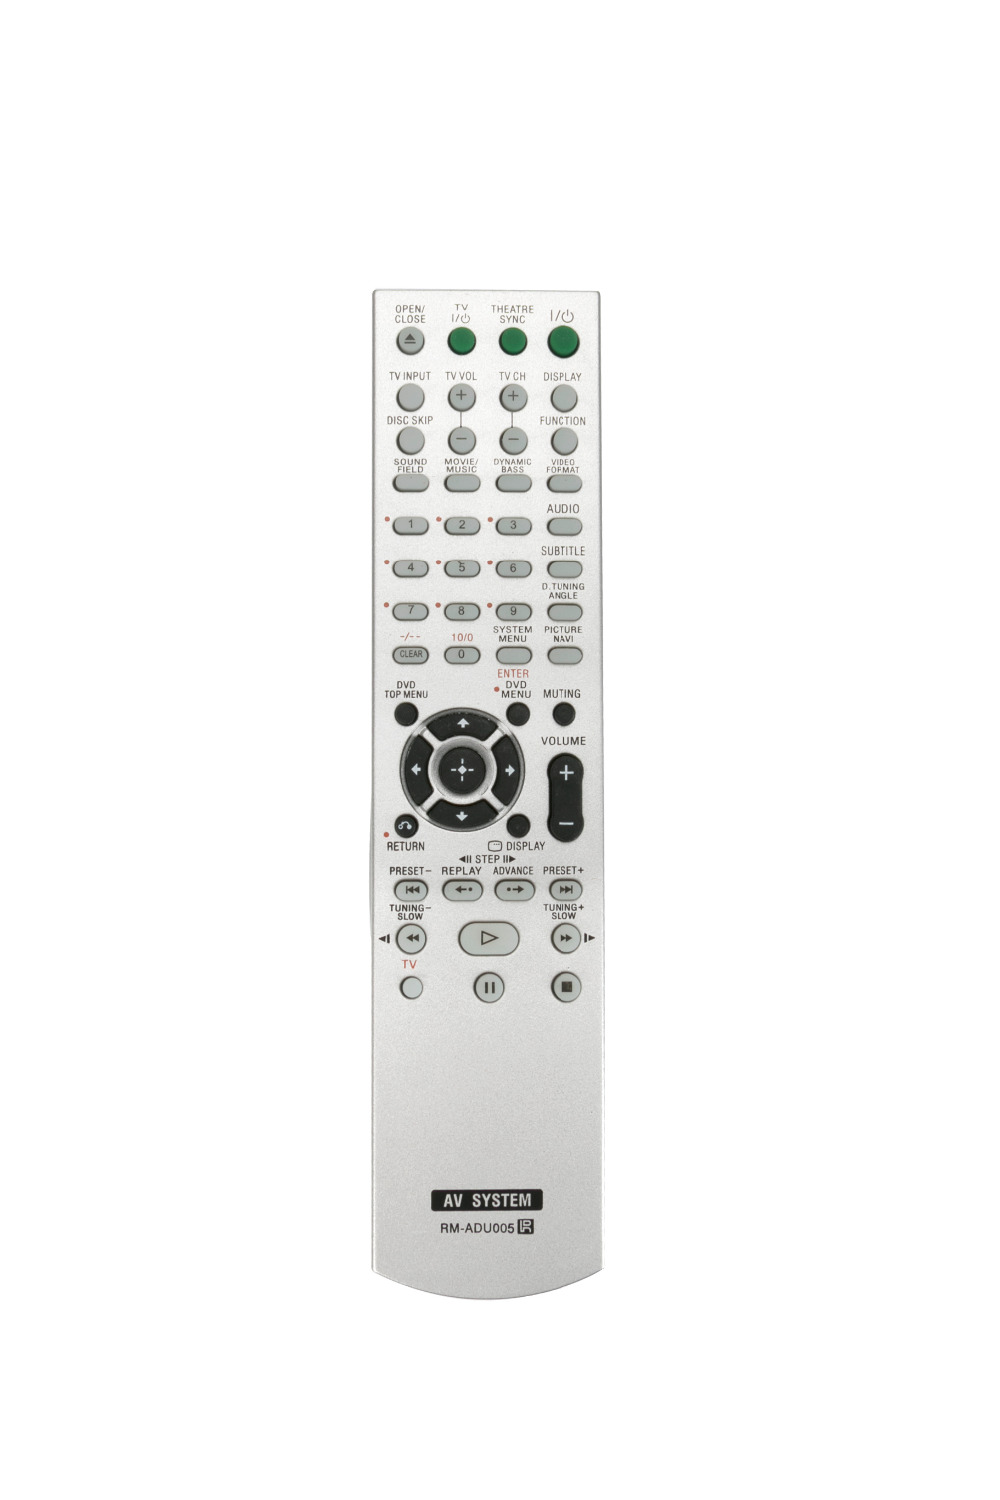 RM ADU005 Remote control for Sony DVD Home Theater System